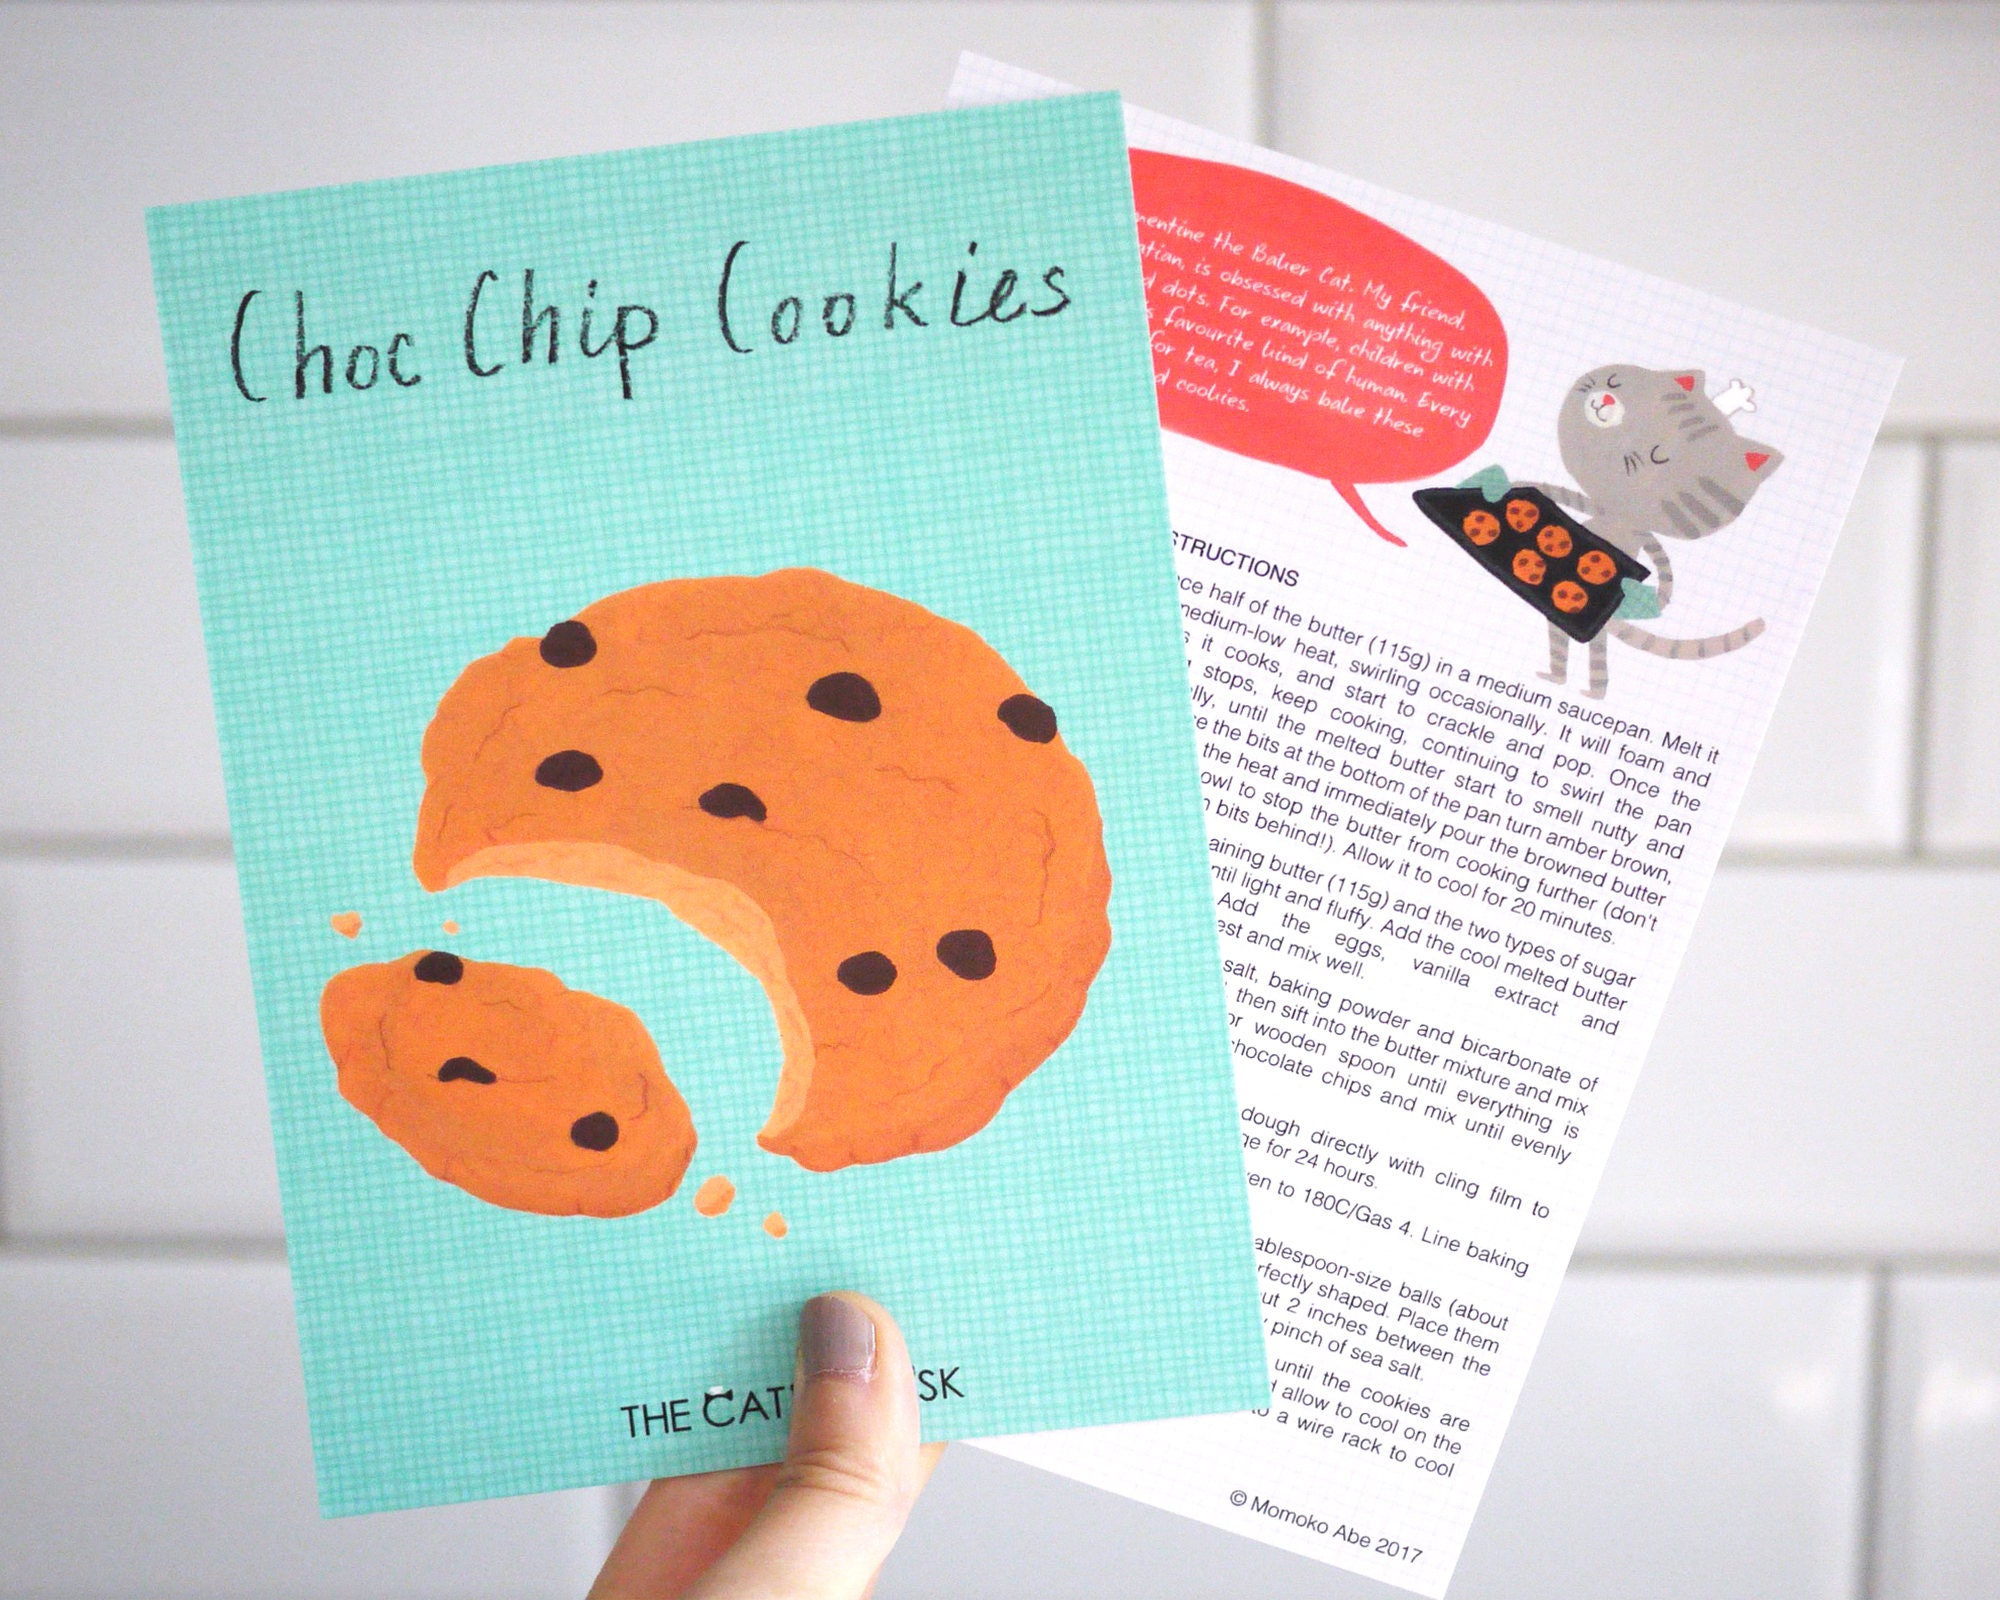 Chocolate Chip Cookies 5x7 Recipe Card feat. Clementine The